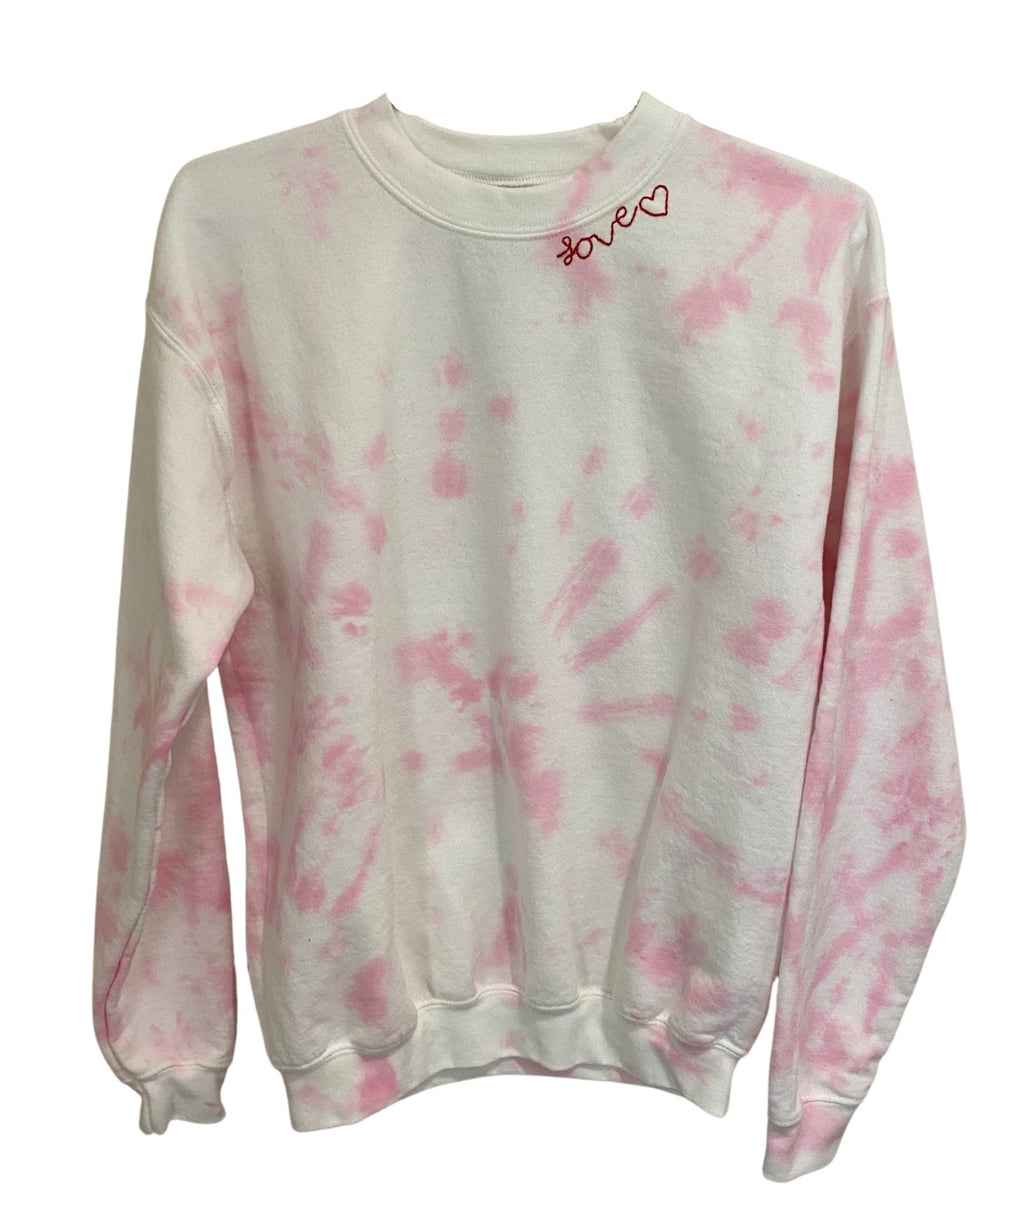 Clothes 4 a Cause Girls Pink and White Love Tie Dye Embroidered Sweatshirt